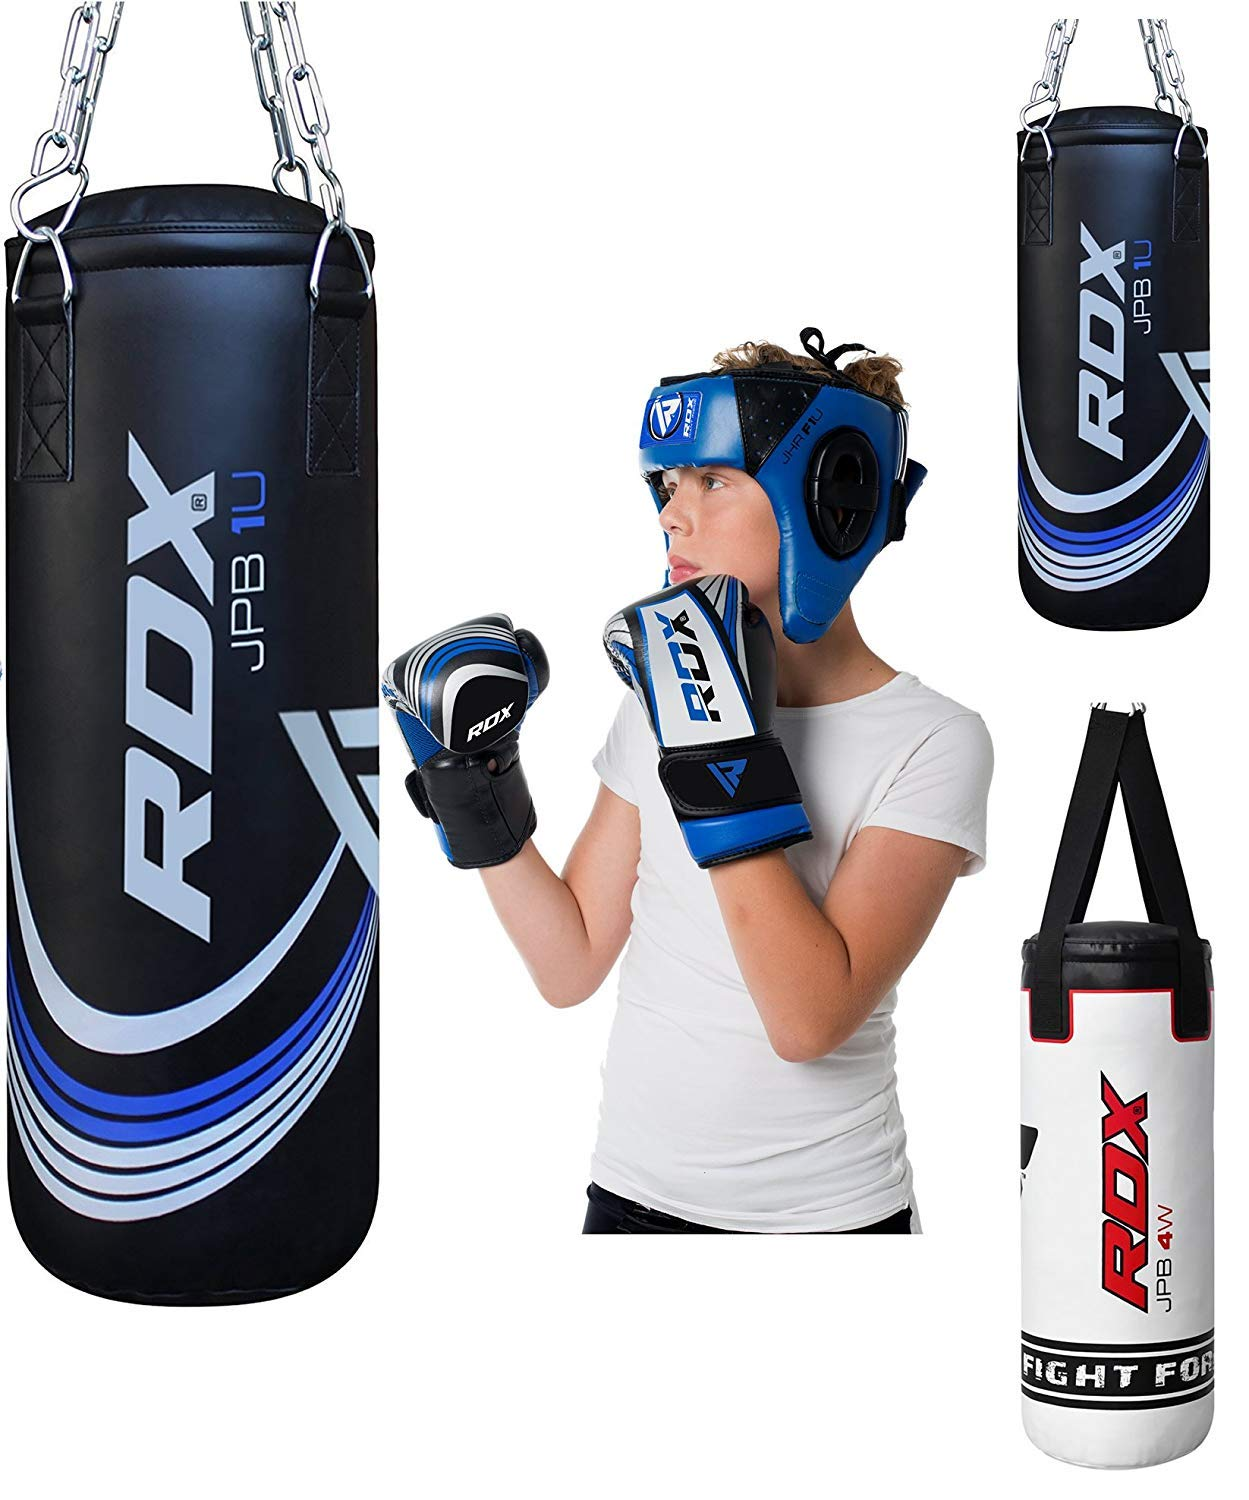 RDX Kids Punching Bag Filled Set Junior Kick Boxing Heavy MMA Training Youth Gloves Punch Mitts Hanging Chain Ceiling Muay Thai Martial Arts 2FT by RDX